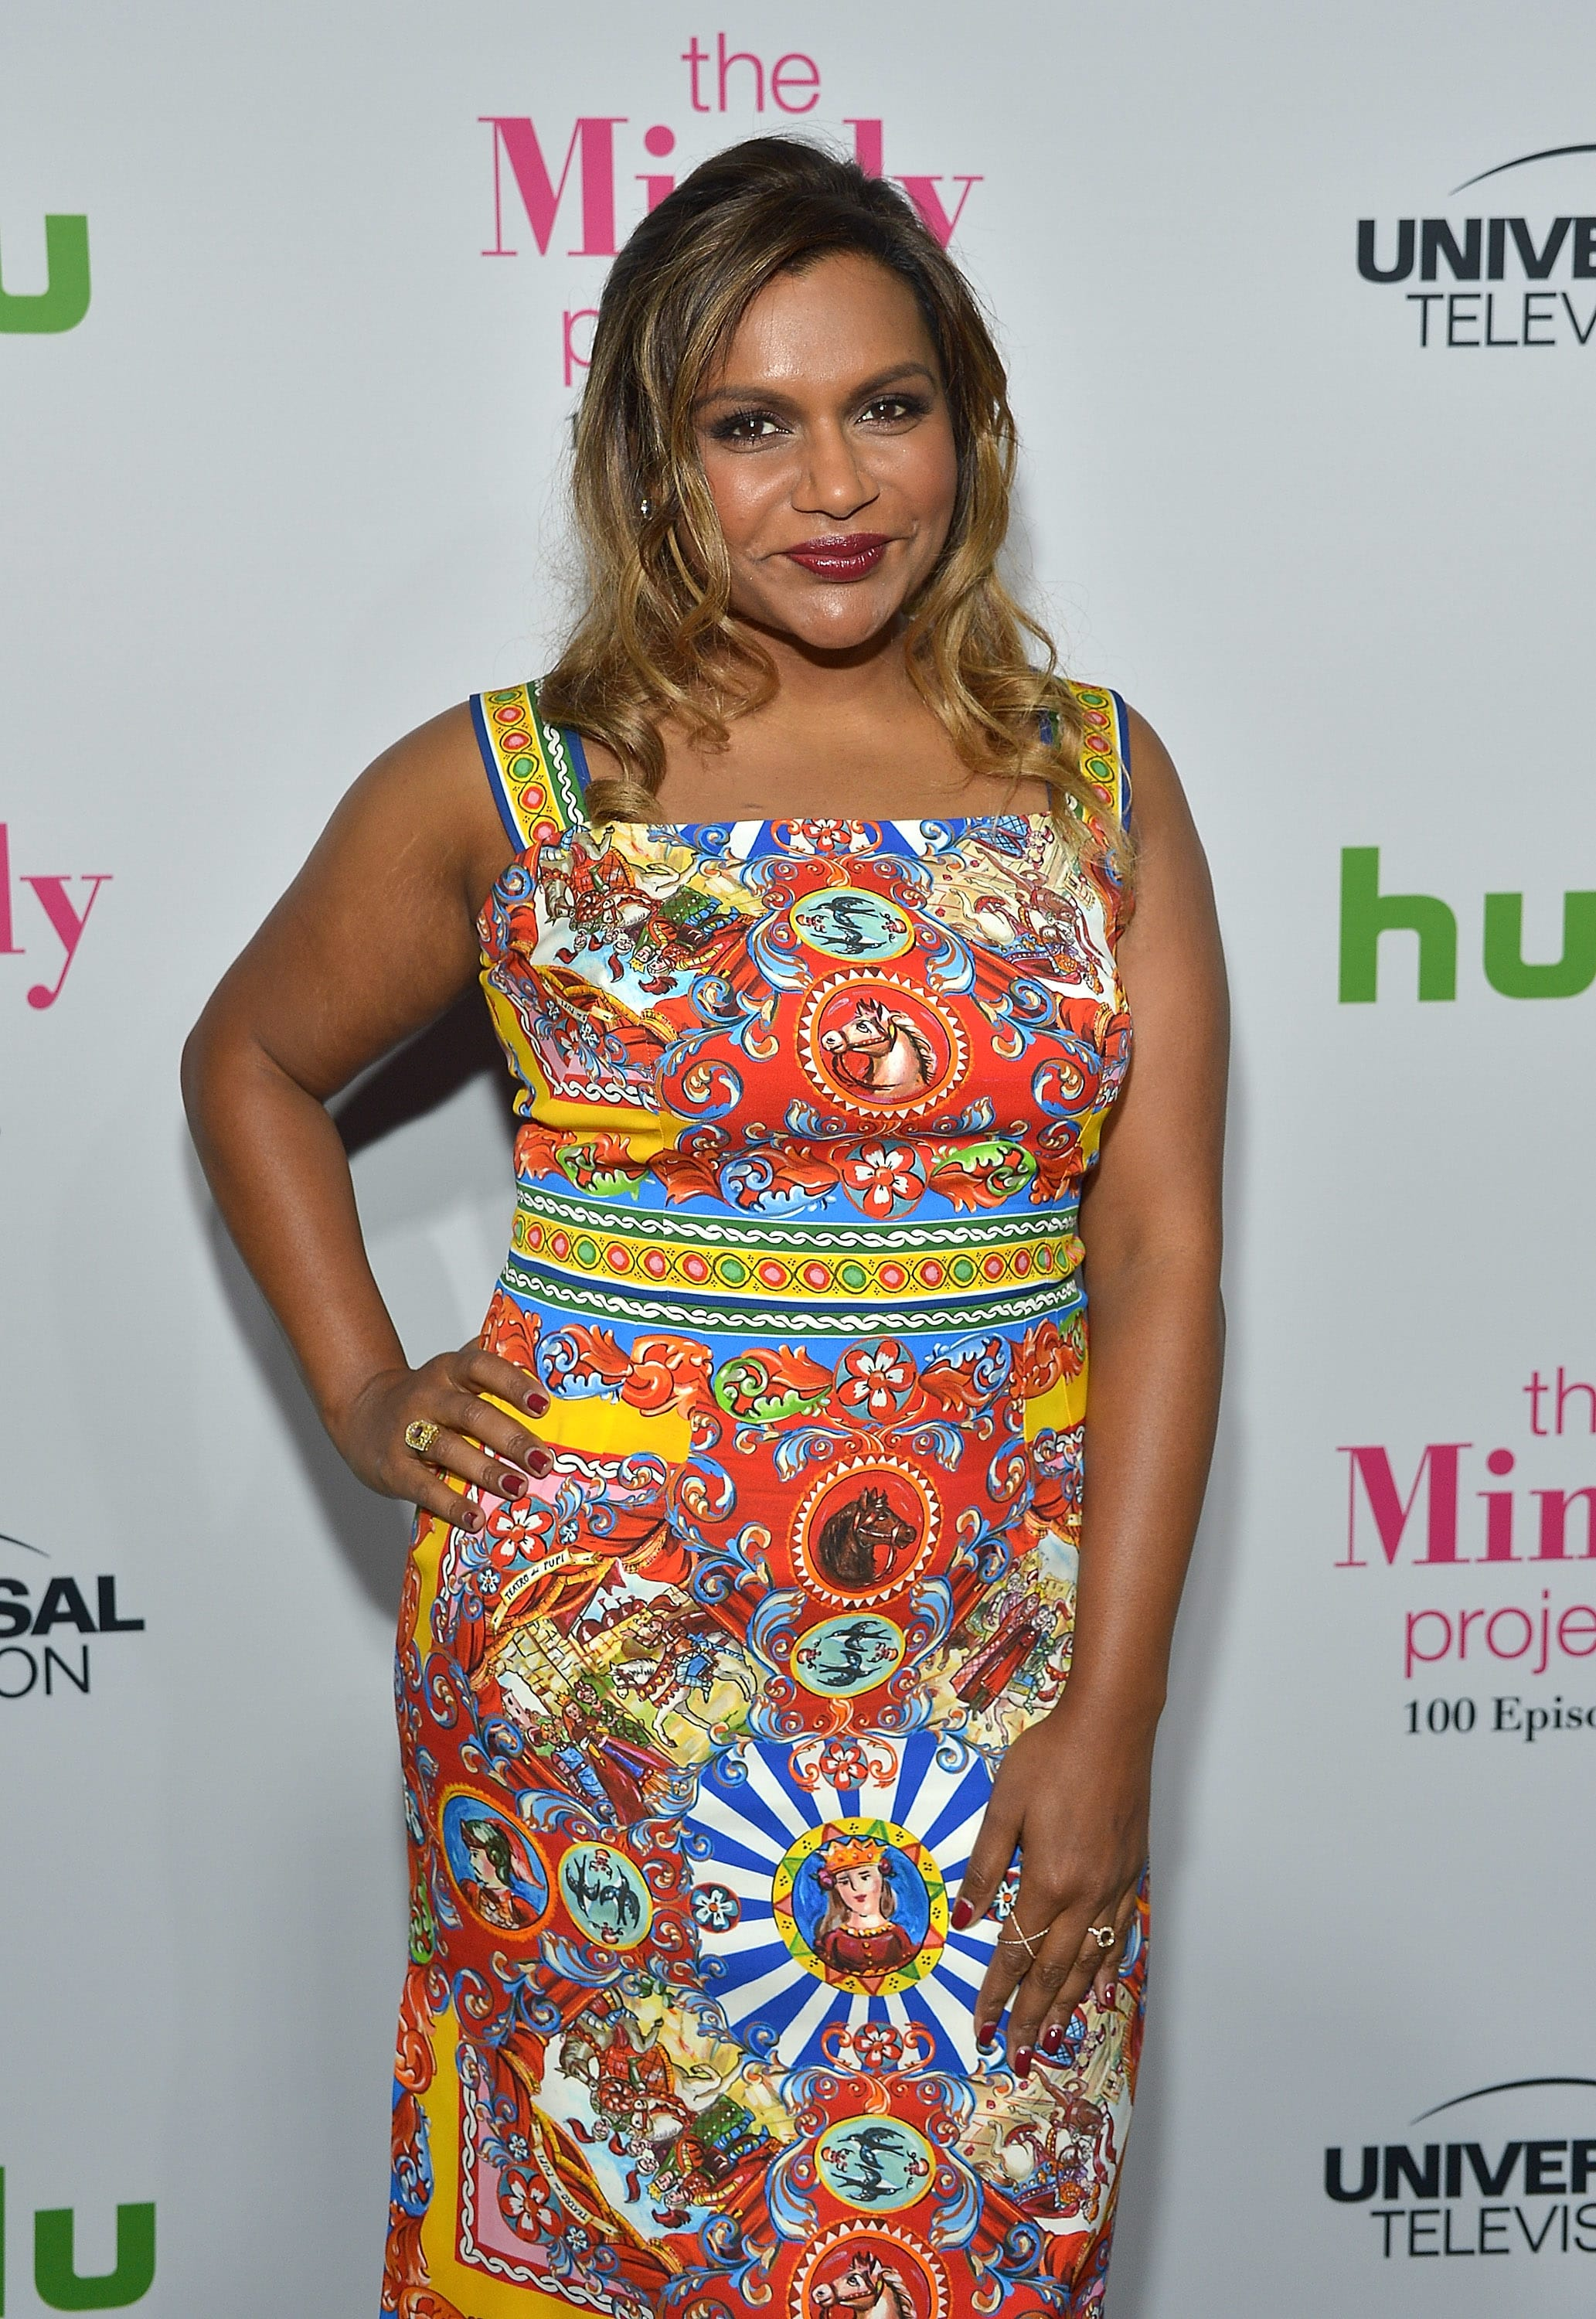 Mindy Kaling In A Dress The Hollywood Gossip